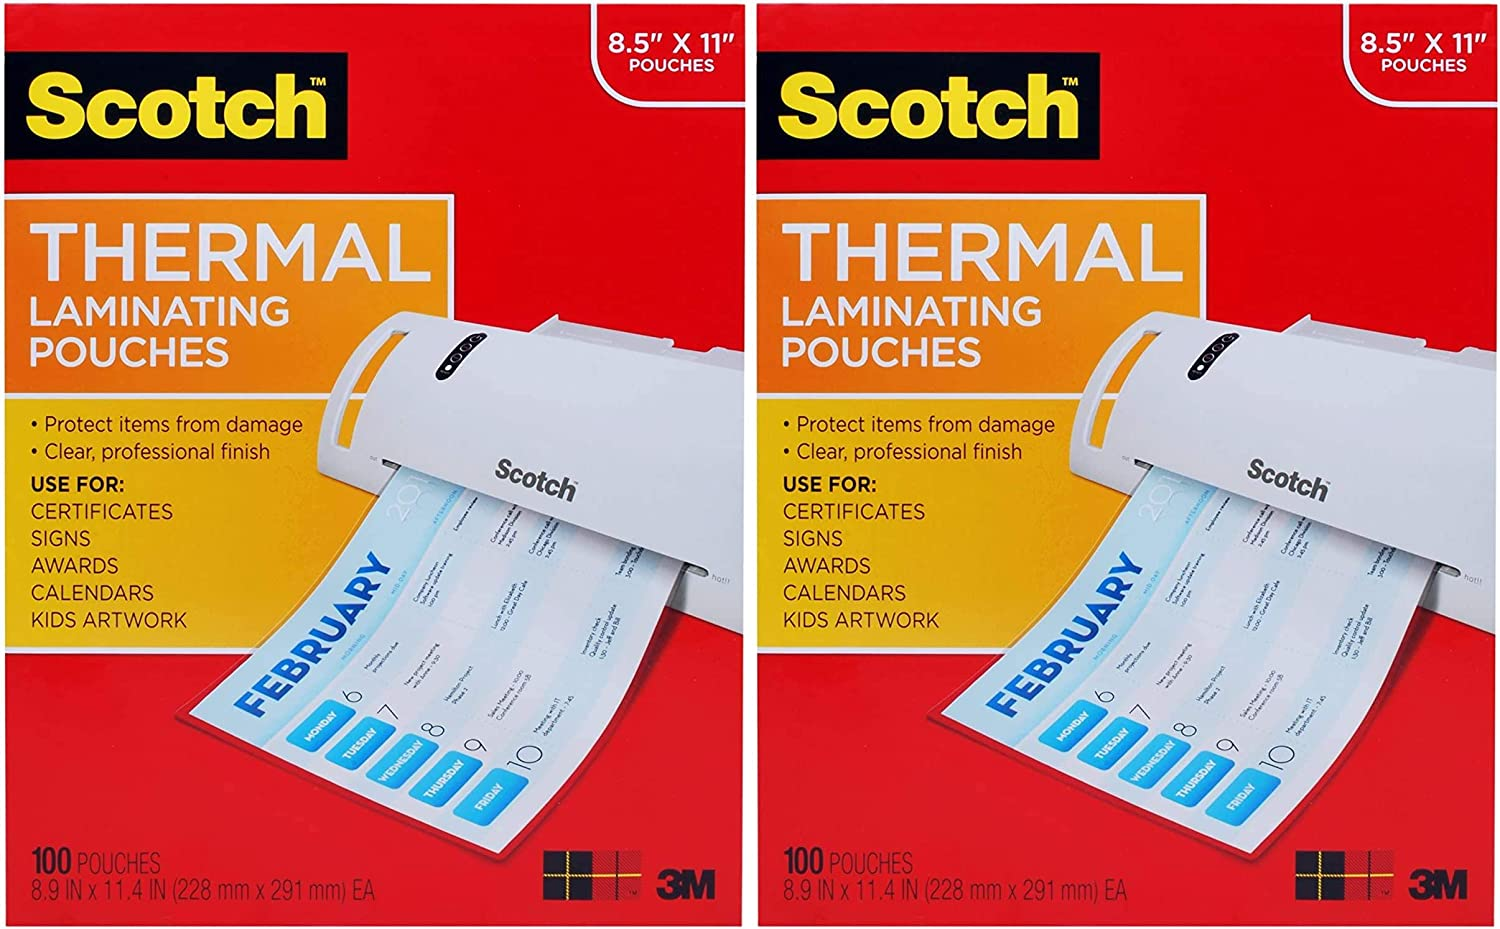 Letter Size Sheets 1 Pack 8.9 x 11.4 inches Scotch Thermal Laminating Pouches TP3854-100 100-Pack